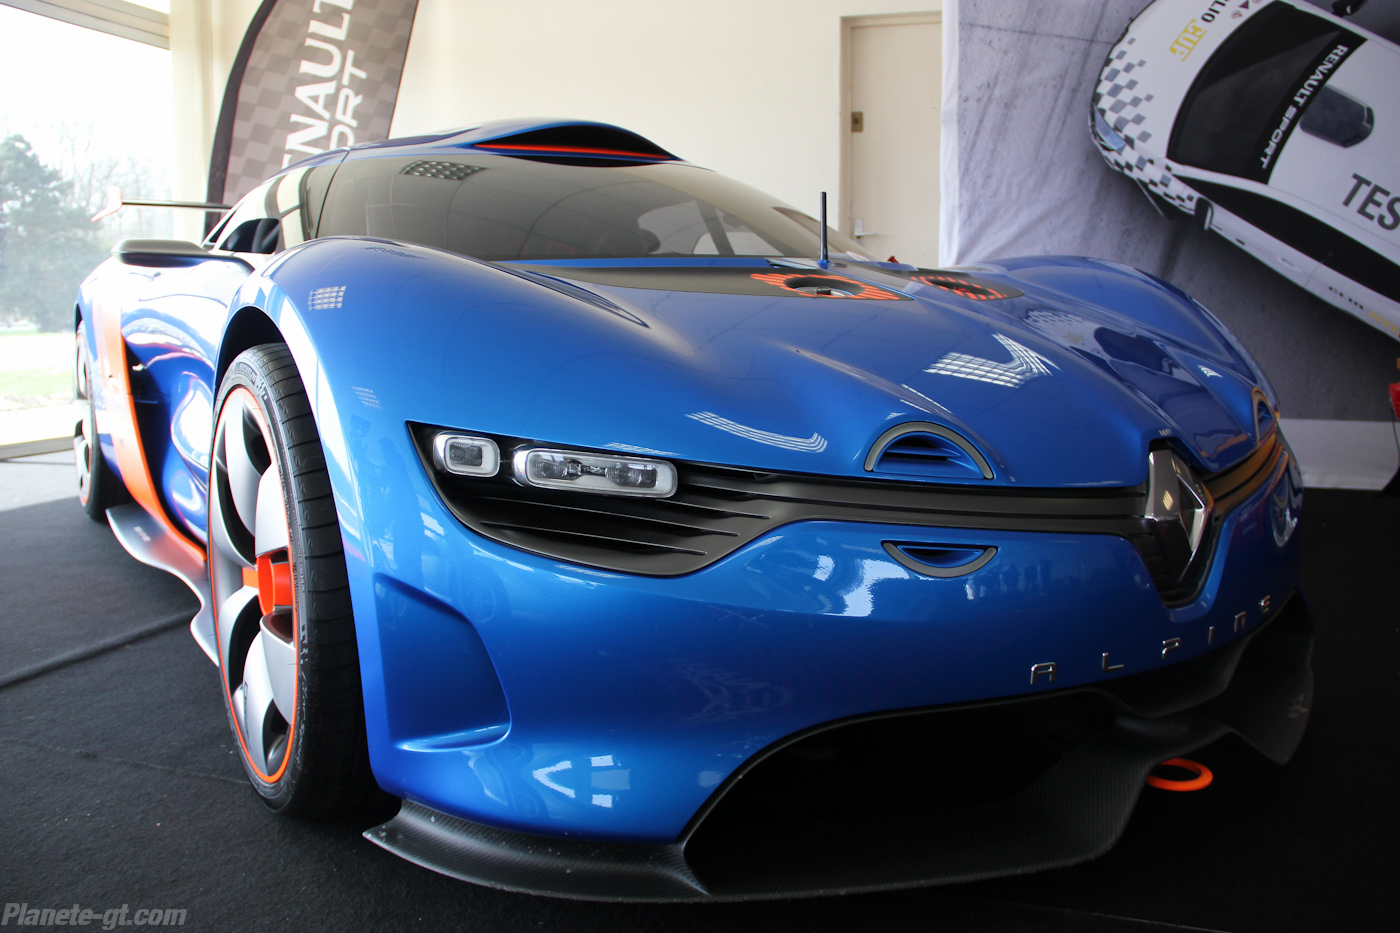 la renault alpine a110 50 arrive dans driveclub plan te. Black Bedroom Furniture Sets. Home Design Ideas